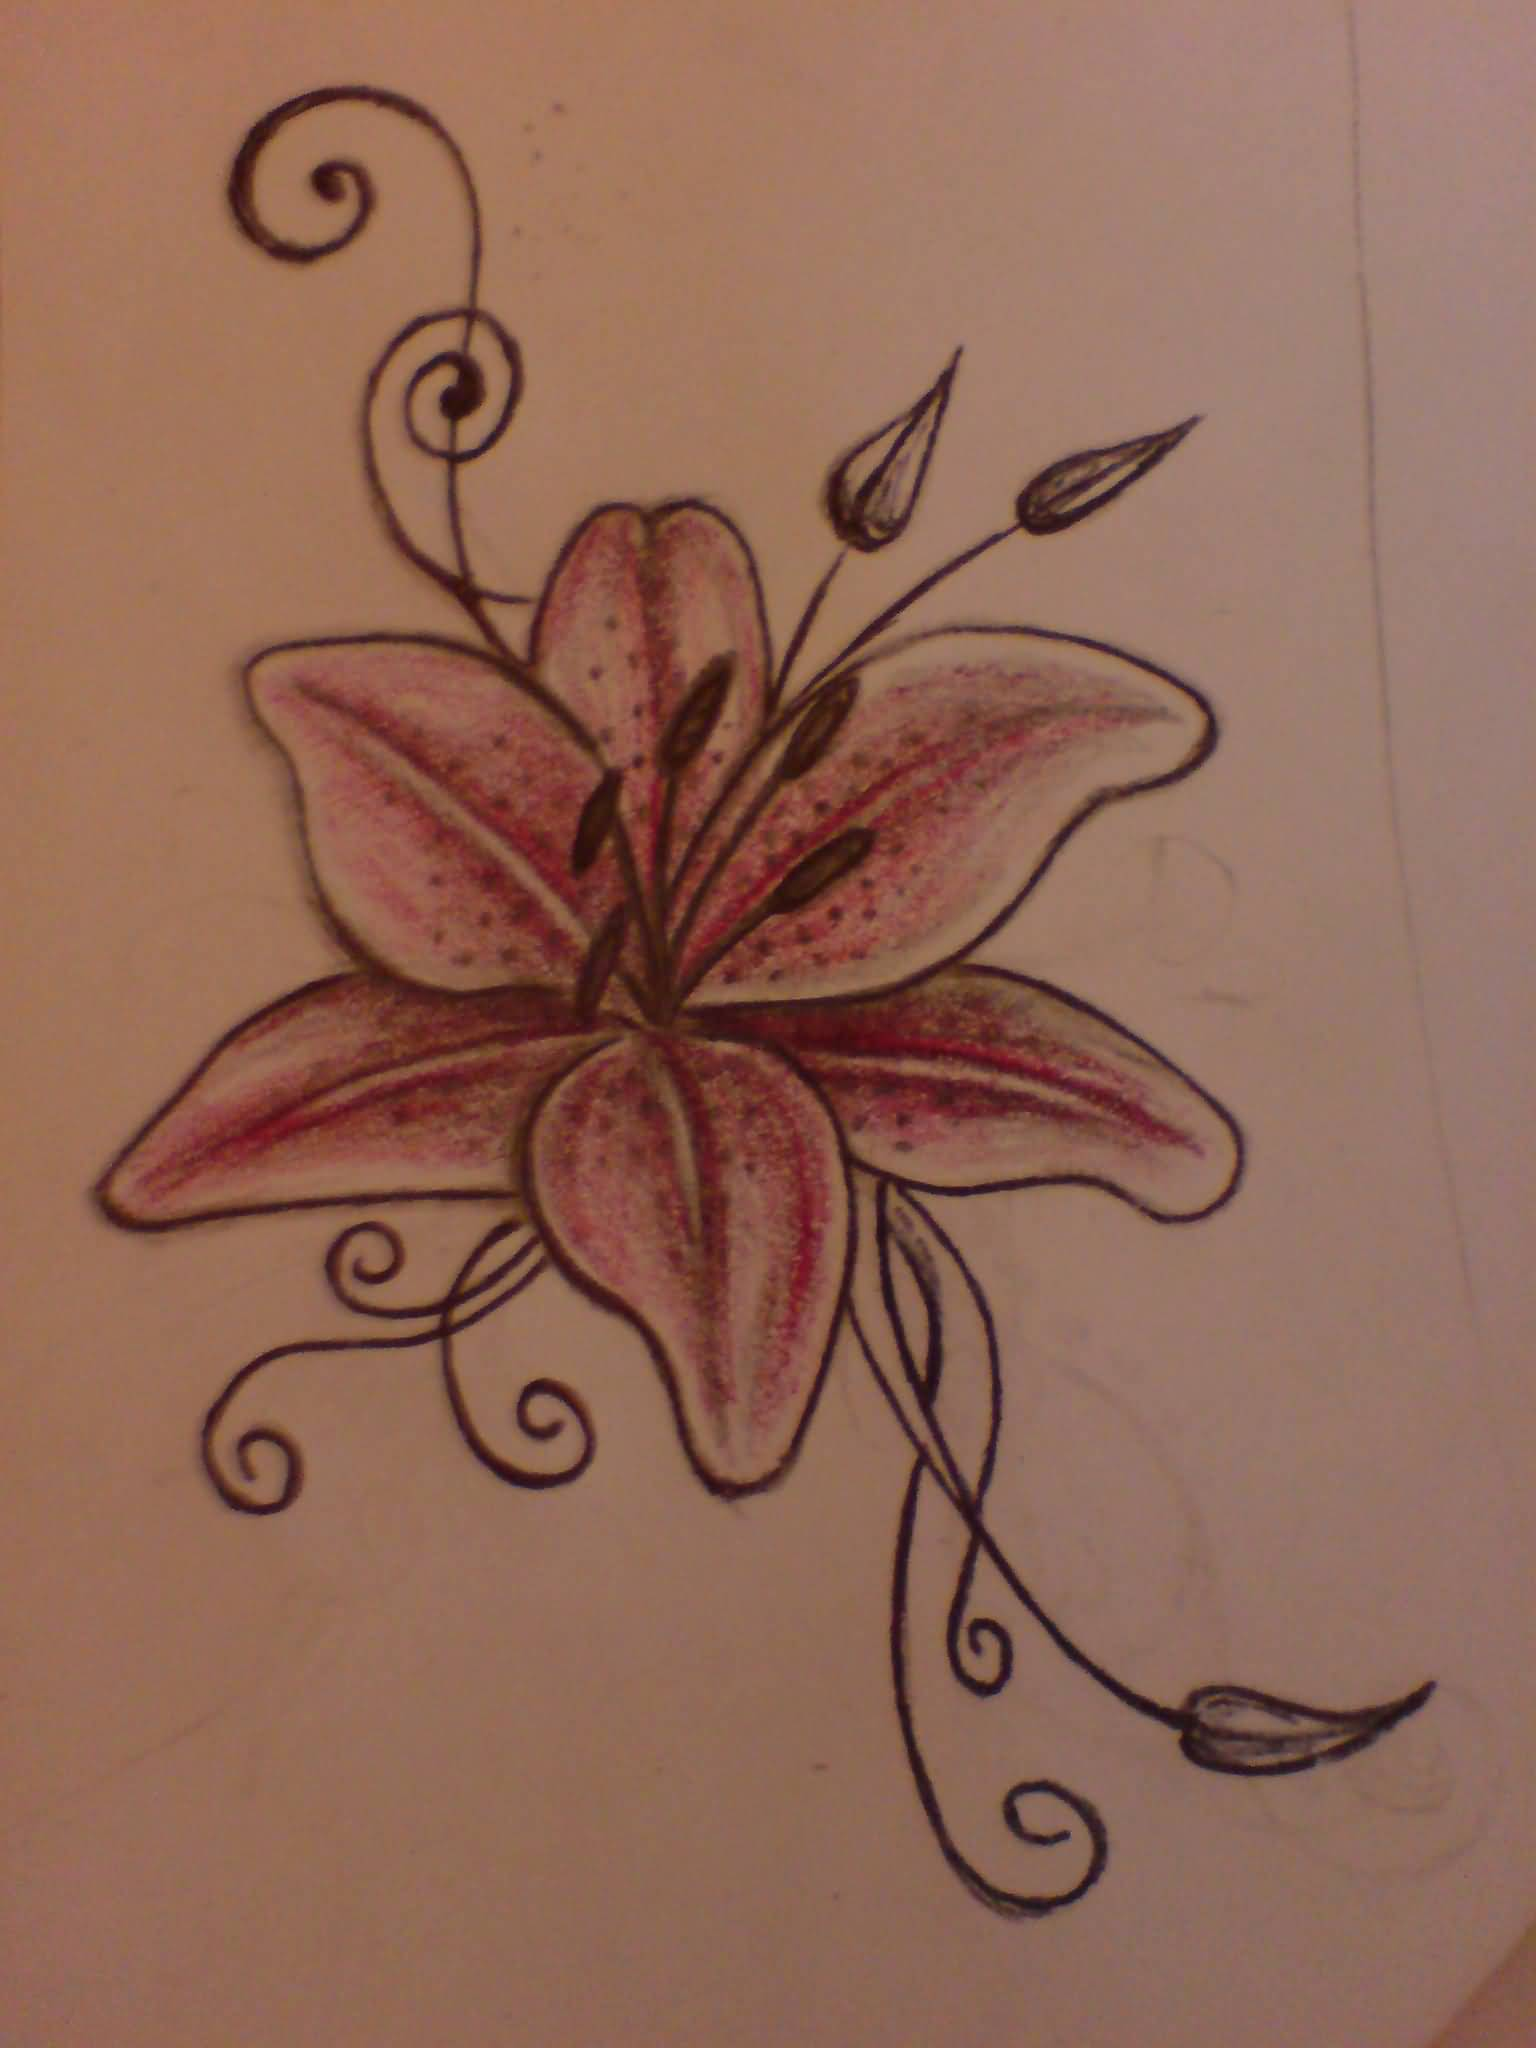 Unique lily flower tattoo designs tattooshunter related tattoo designs unique lily flower tattoo izmirmasajfo Image collections